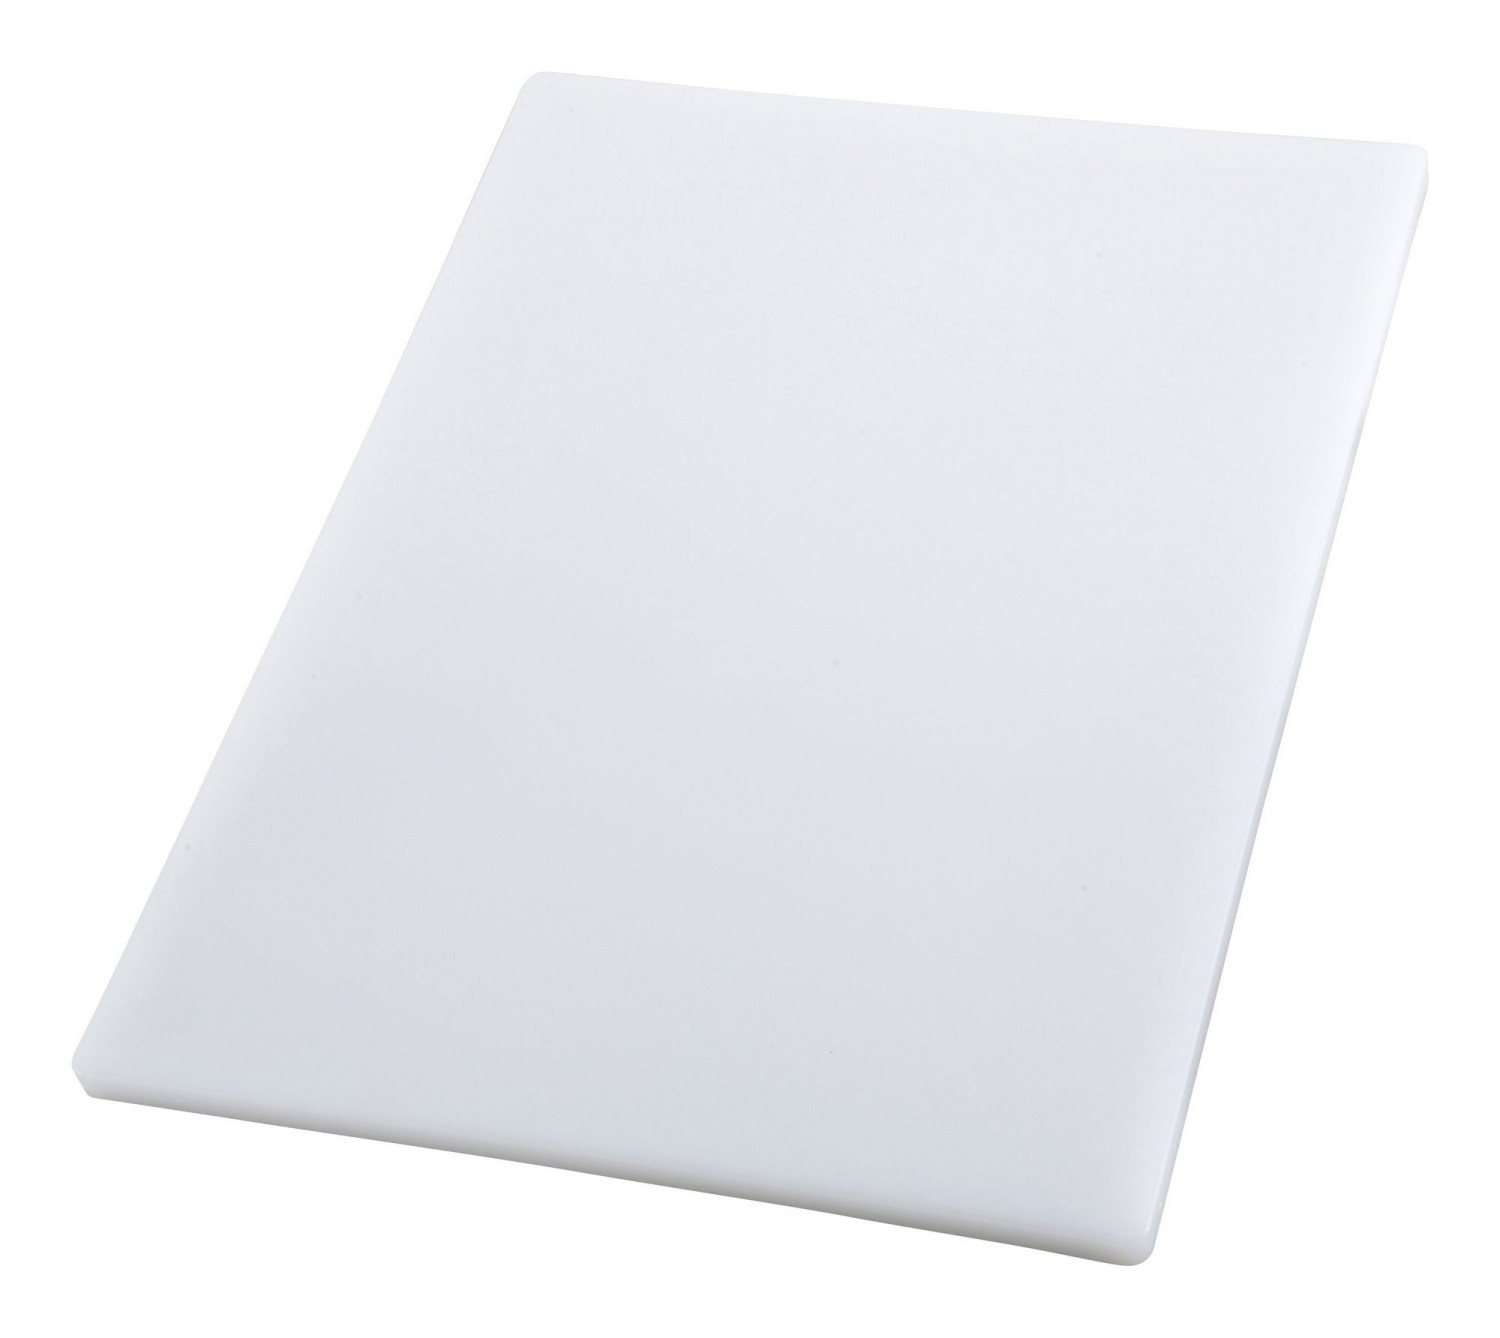 "Winco CBH-1824 Thick White Plastic Cutting Board 18"" x 24"" x 3/4"""